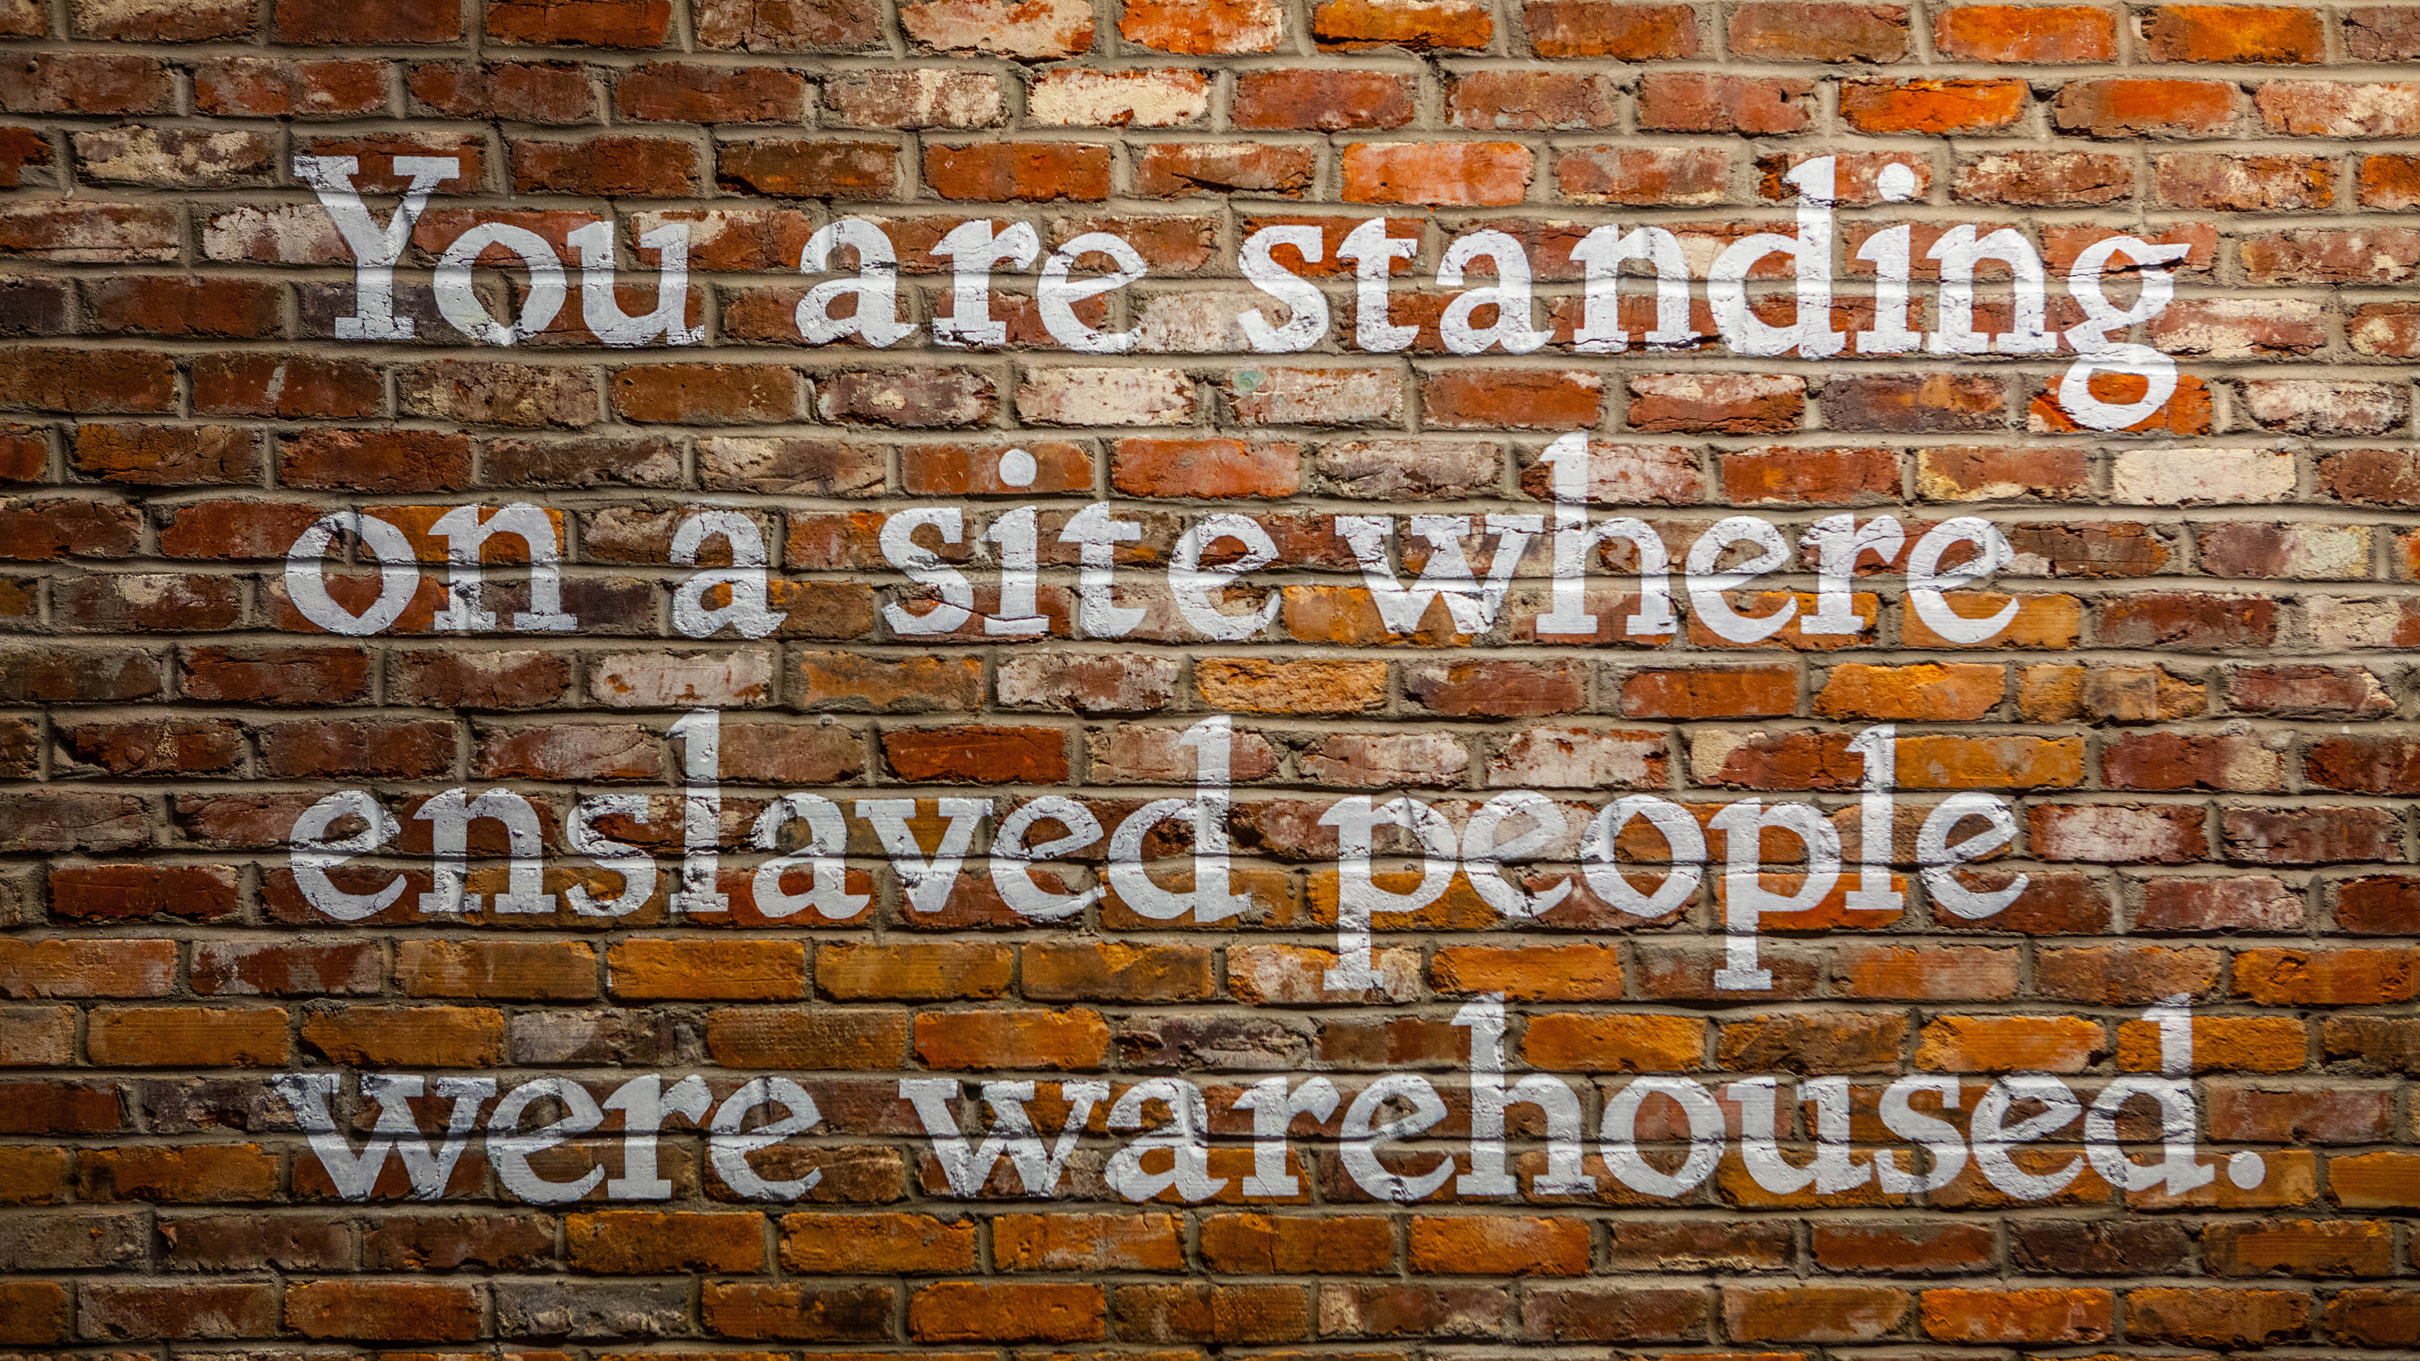 You are standing on a site where enslaved people were warehoused.